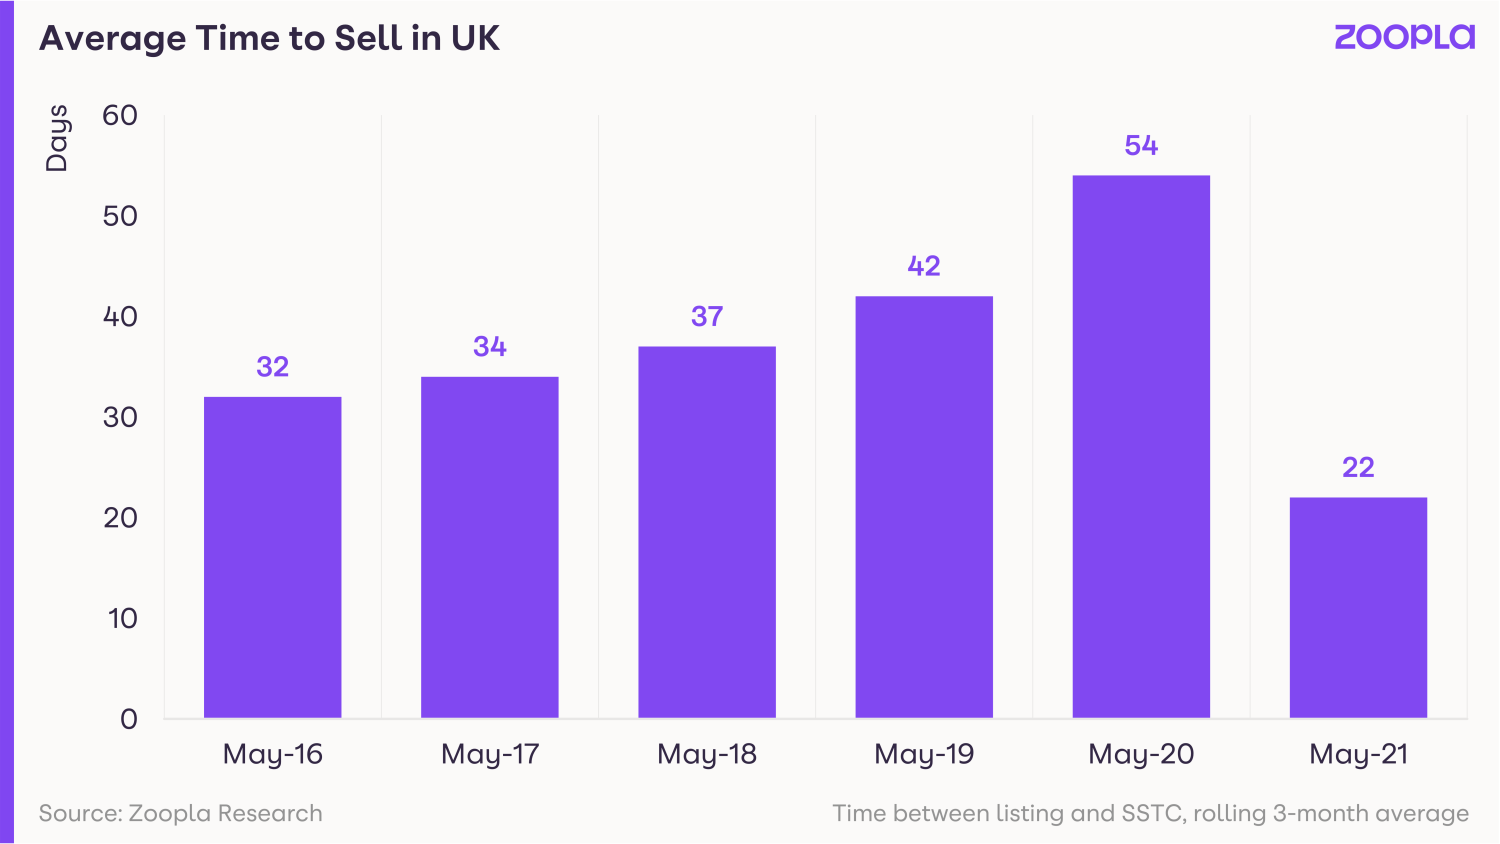 Visual showing average time to sell a property in the UK